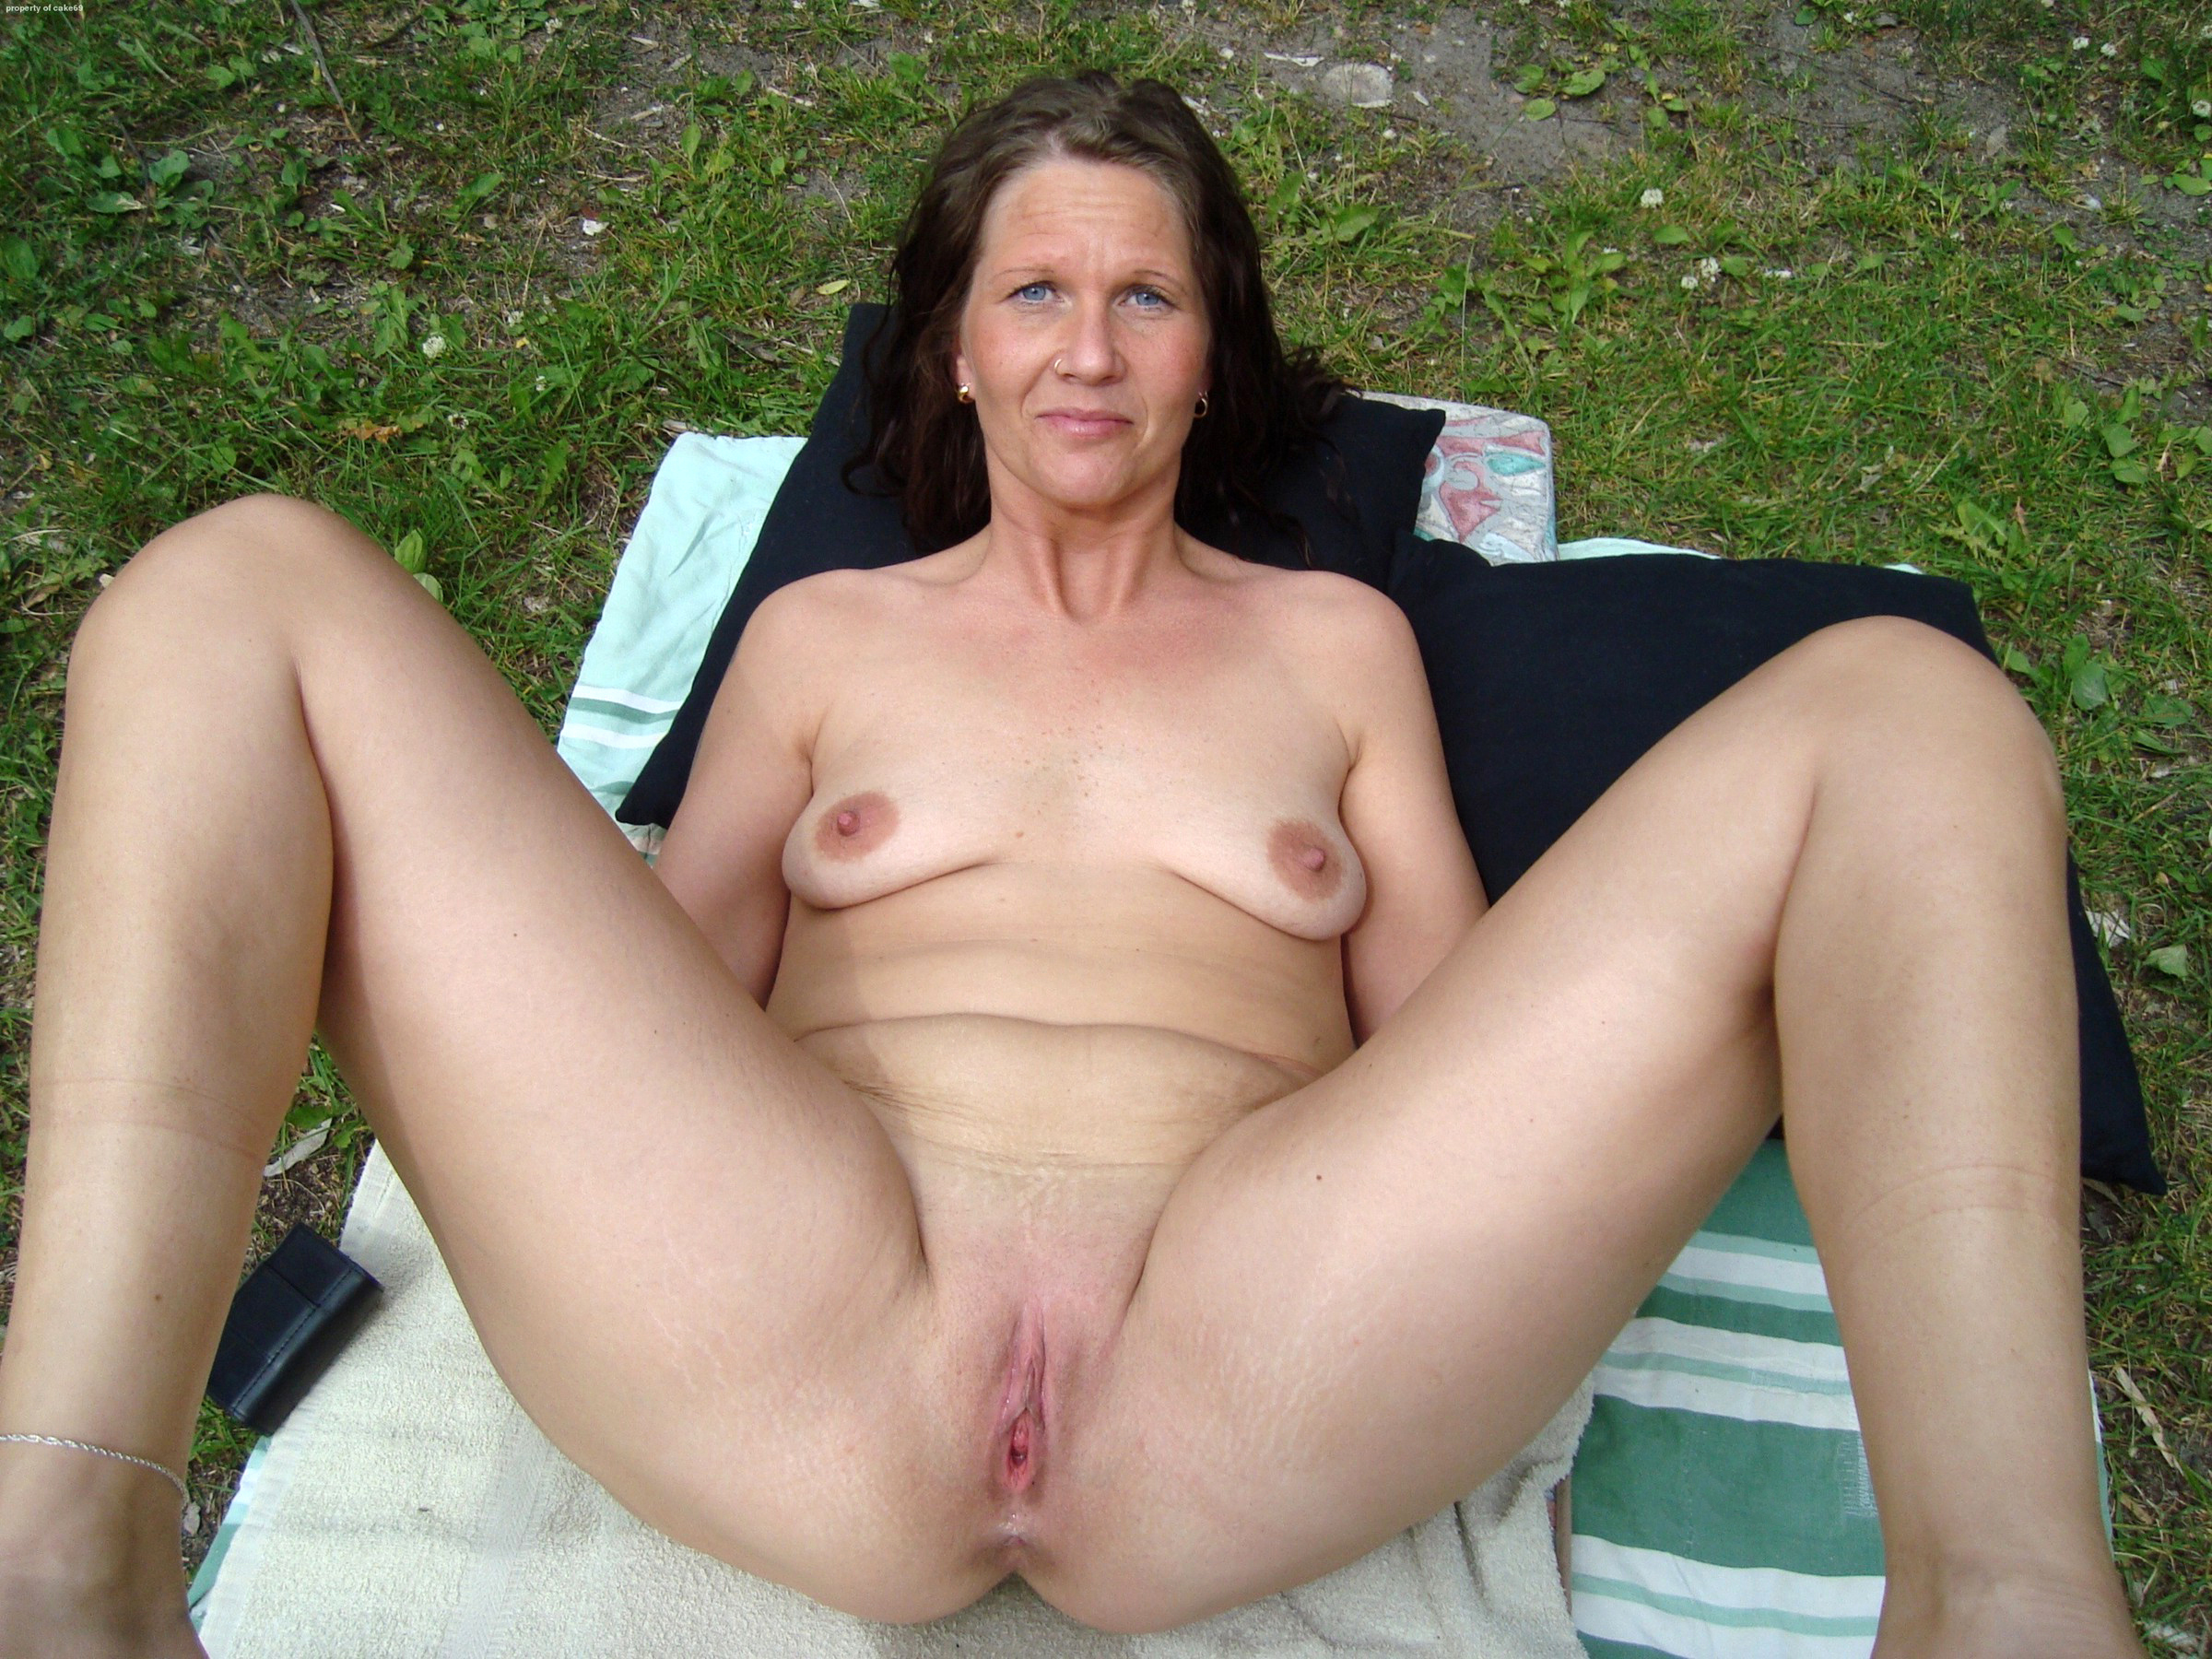 real hot grown-up shaved pussy galleries